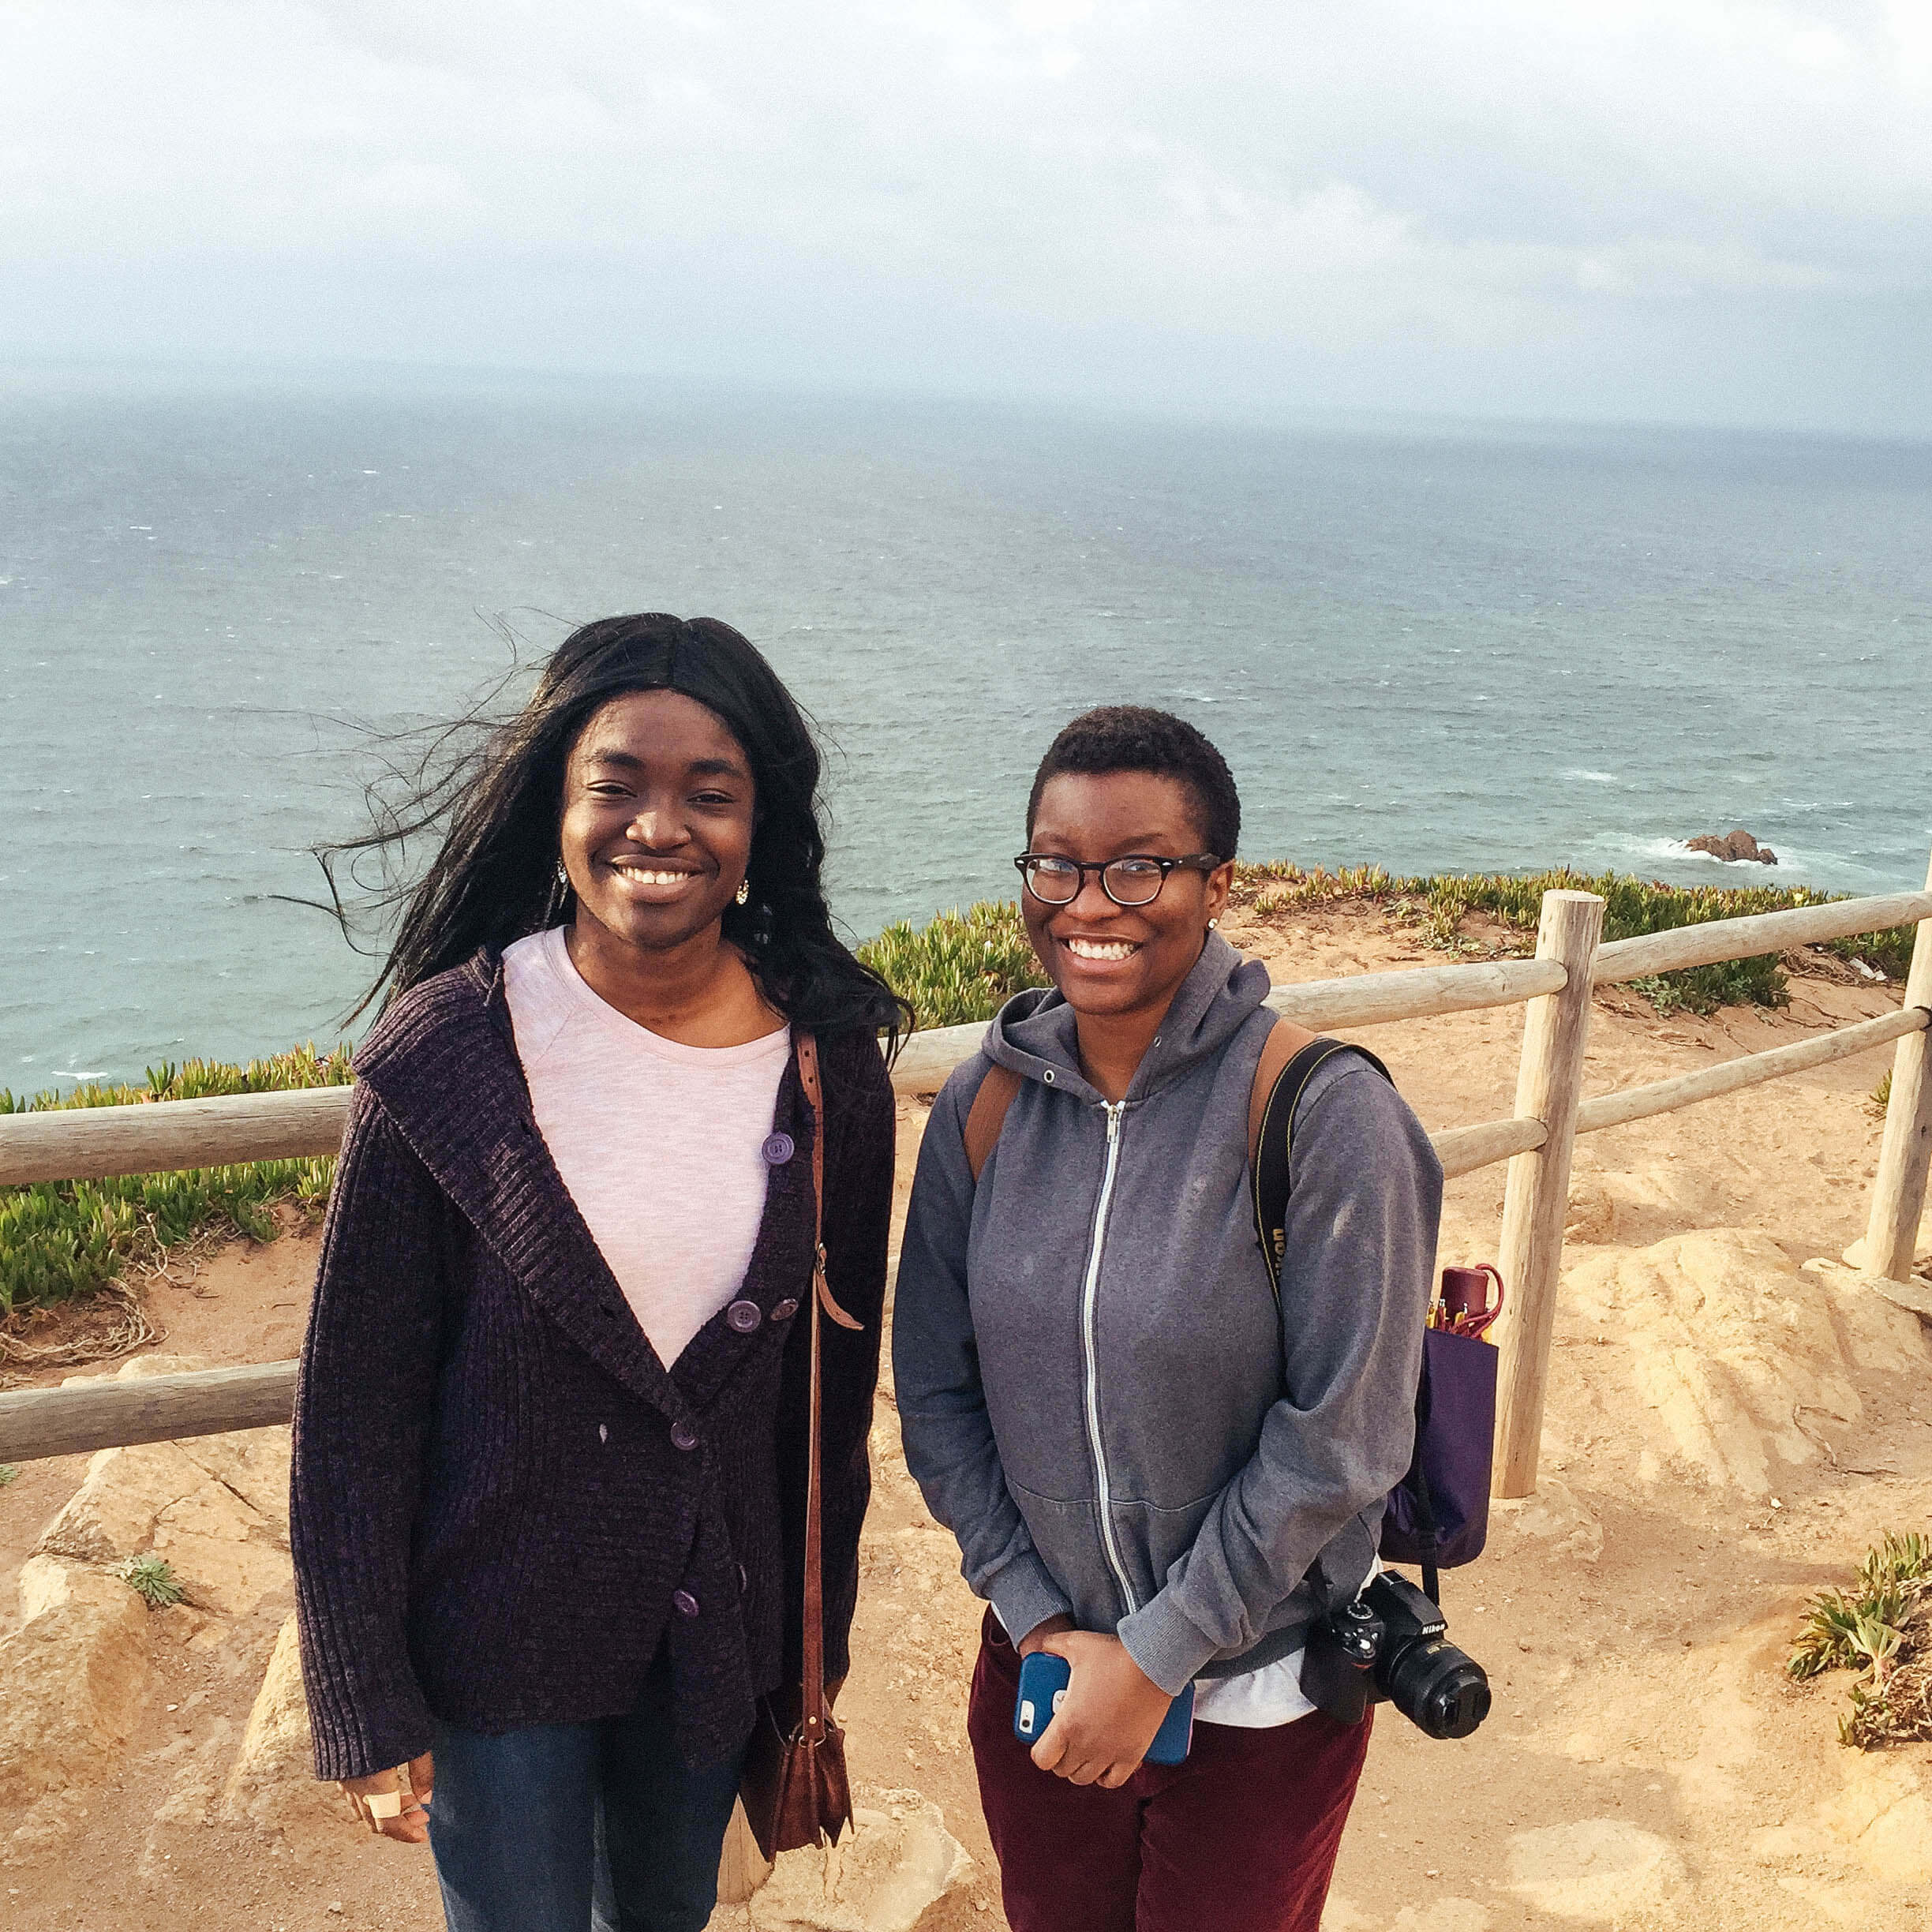 Friendliest countries for black travelers - Cabo da Roca